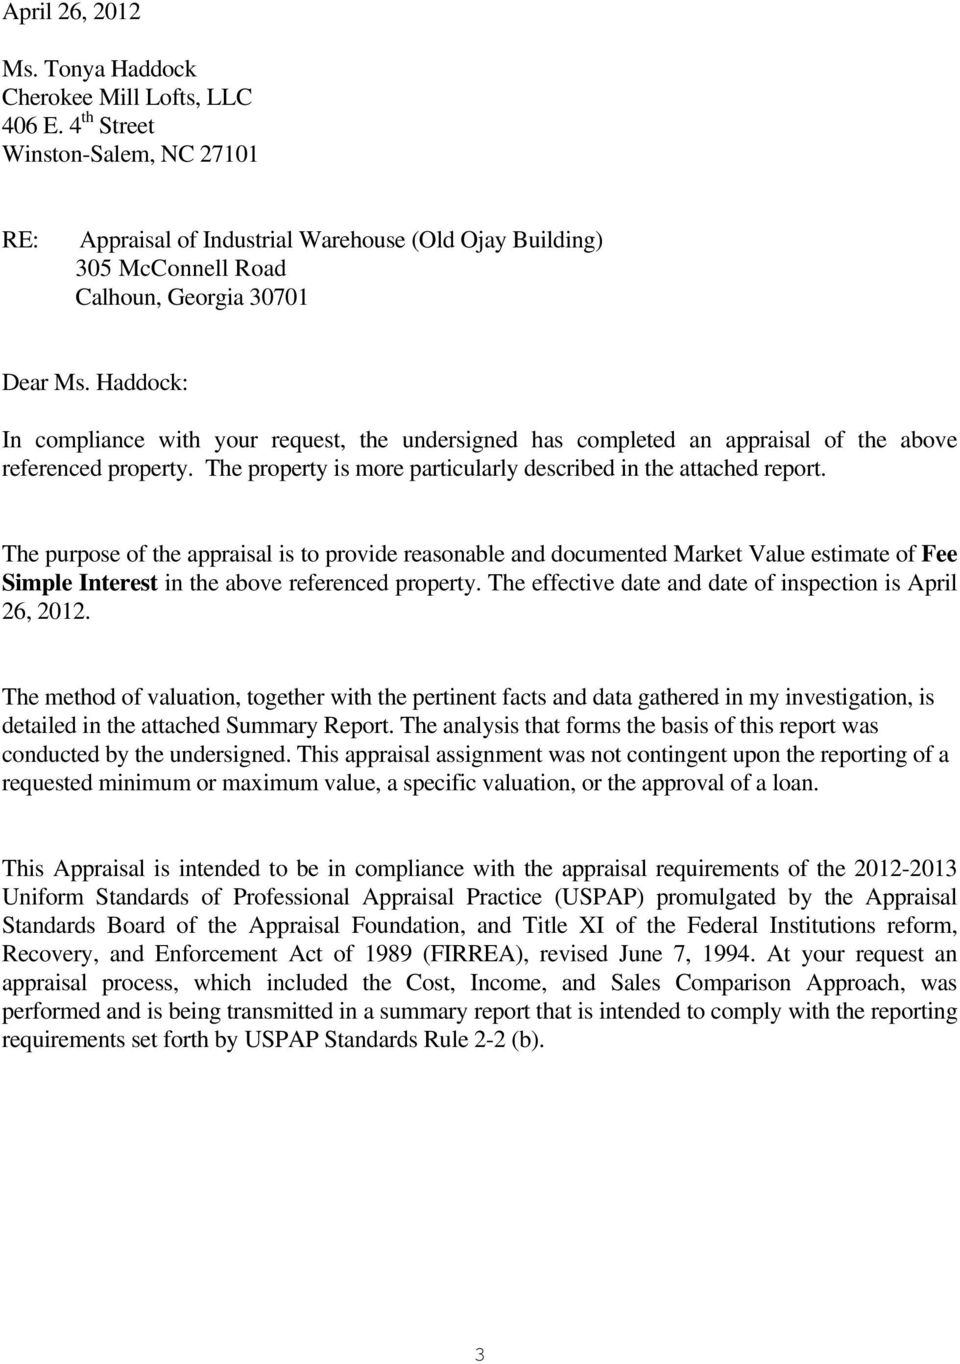 Haddock: In compliance with your request, the undersigned has completed an appraisal of the above referenced property. The property is more particularly described in the attached report.